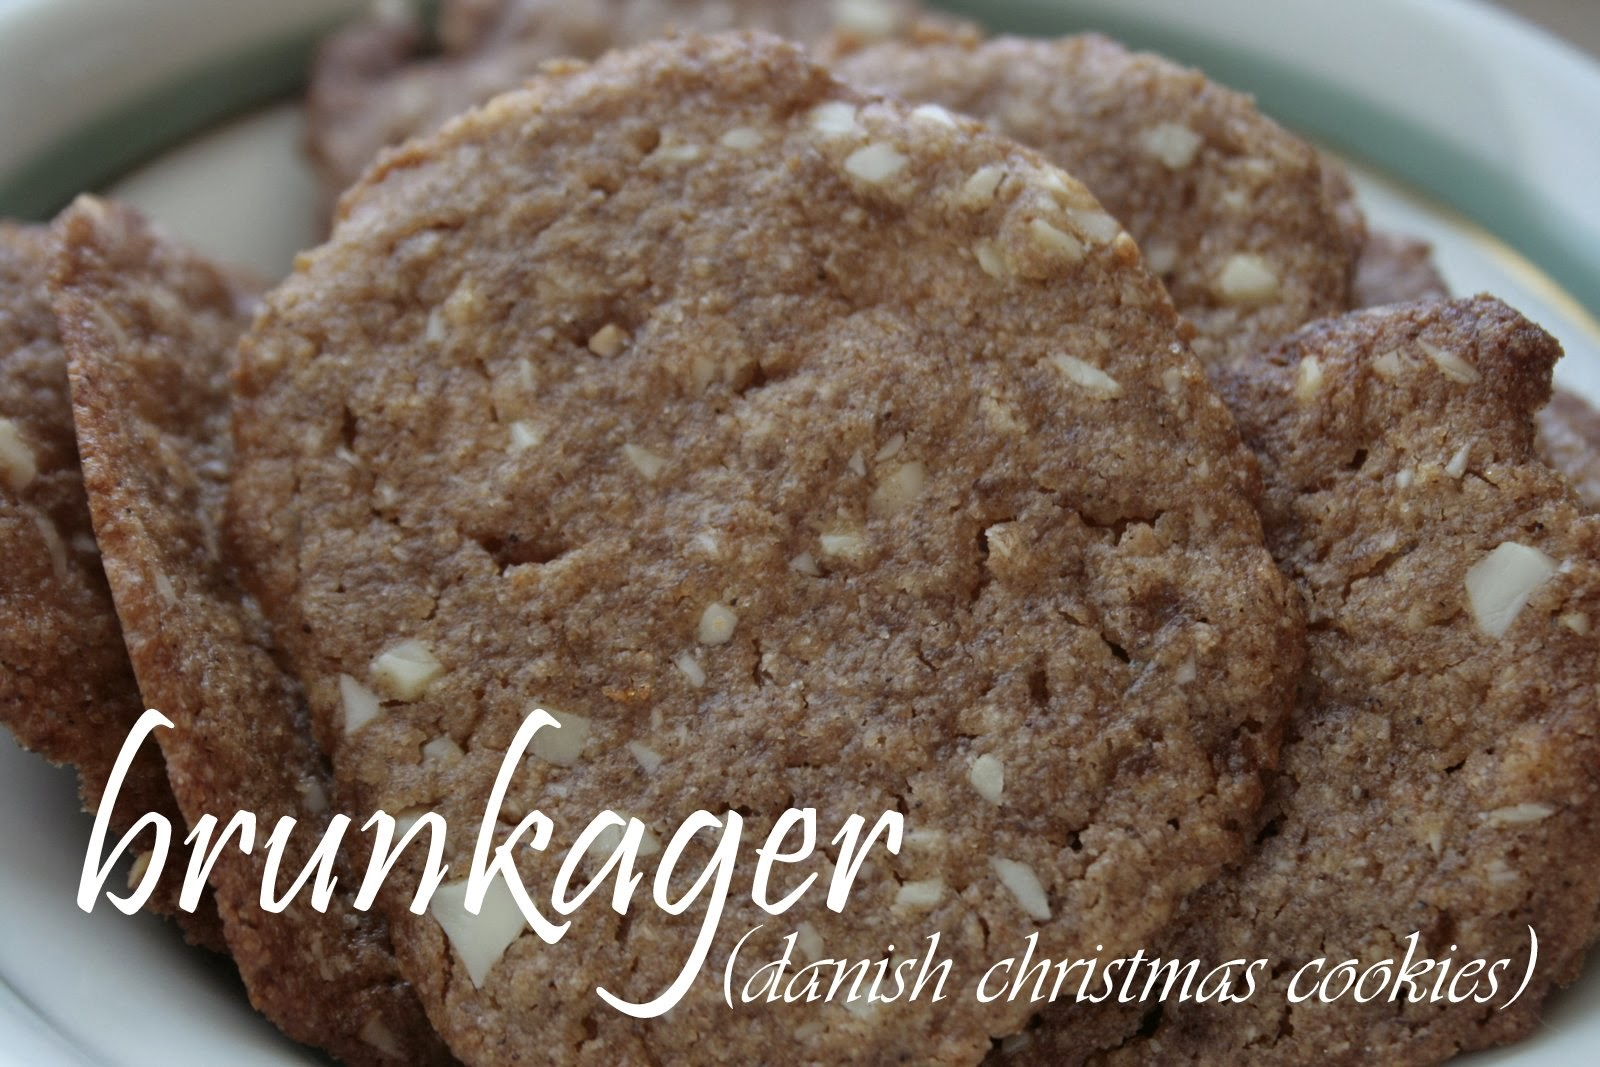 Our Carlson Life Milling Mondays Brunkager Danish Christmas Cookies